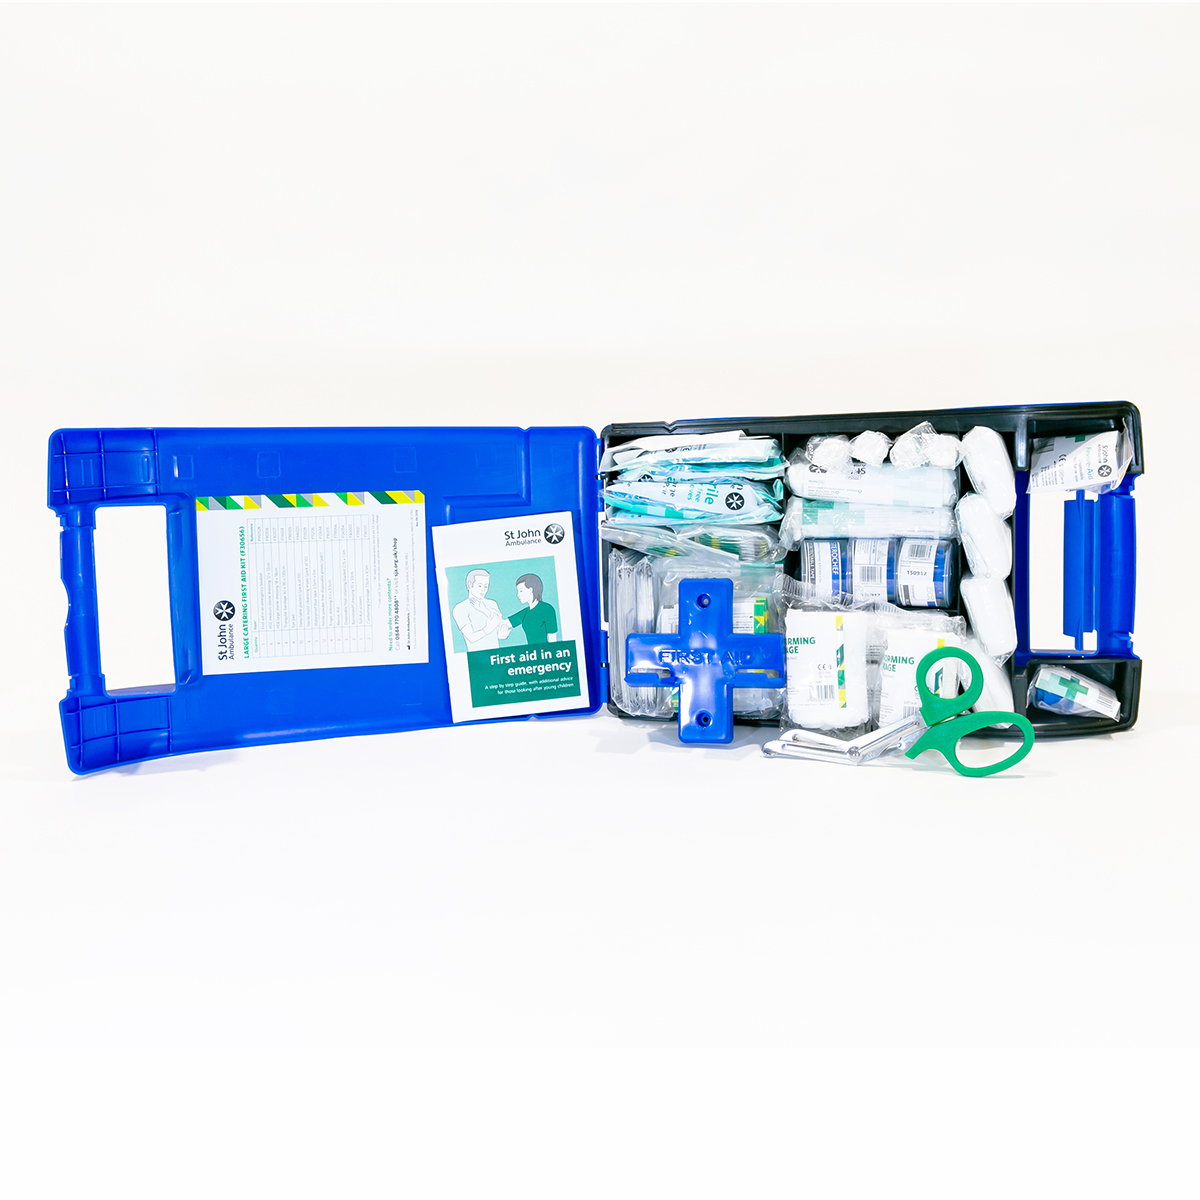 St John Ambulance Large Alpha Catering Workplace First Aid Kit BS 8599-1:2019